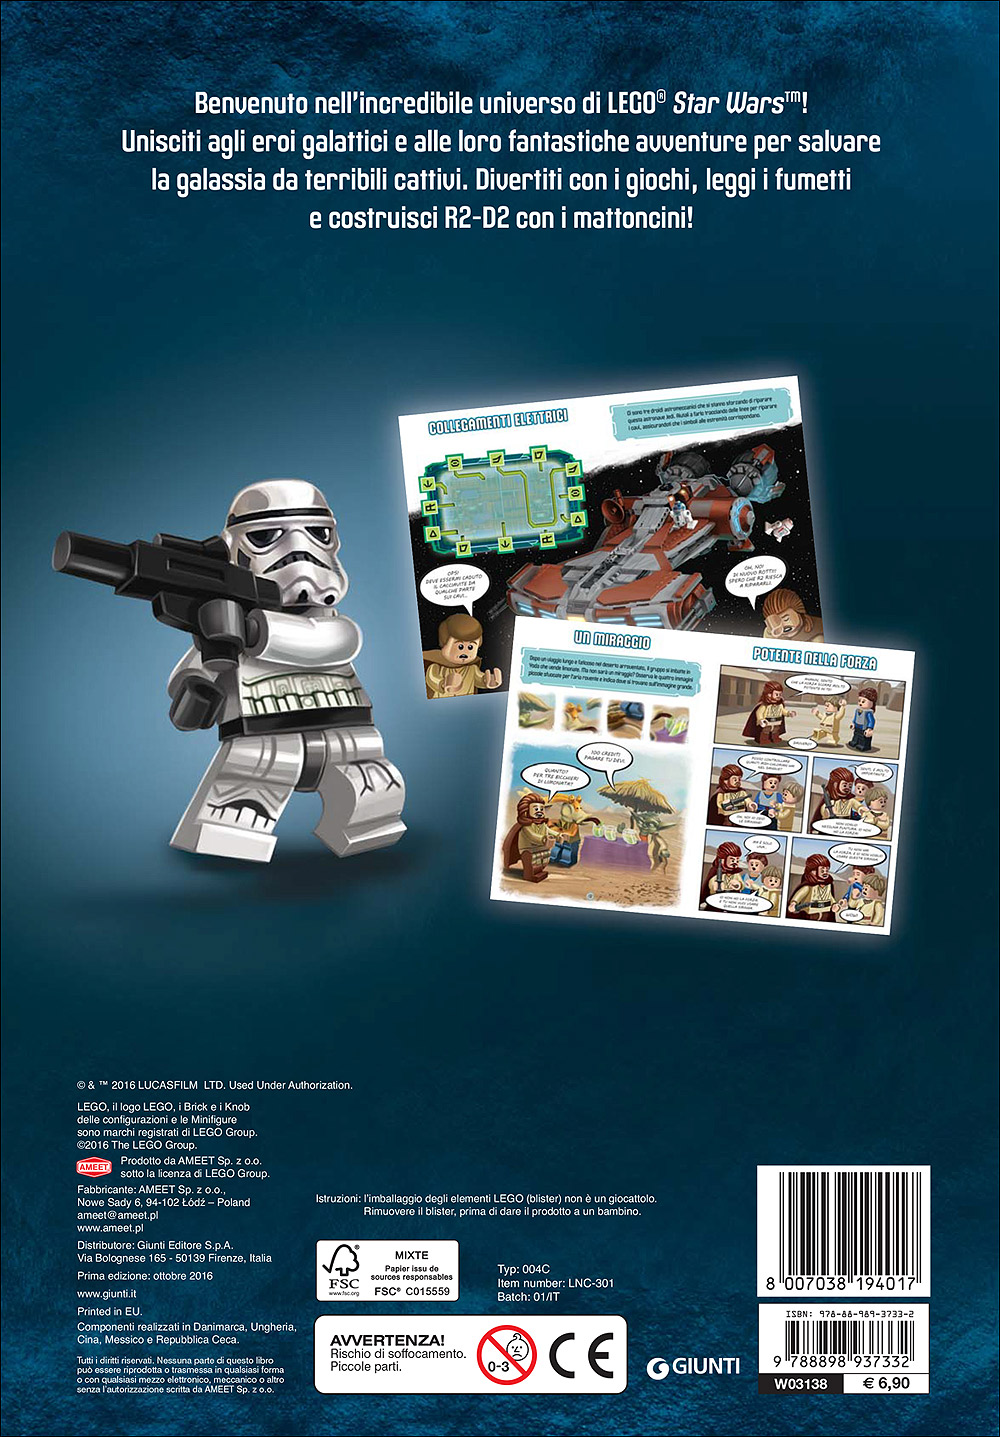 Super Album - Star Wars LEGO. Avventure spaziali